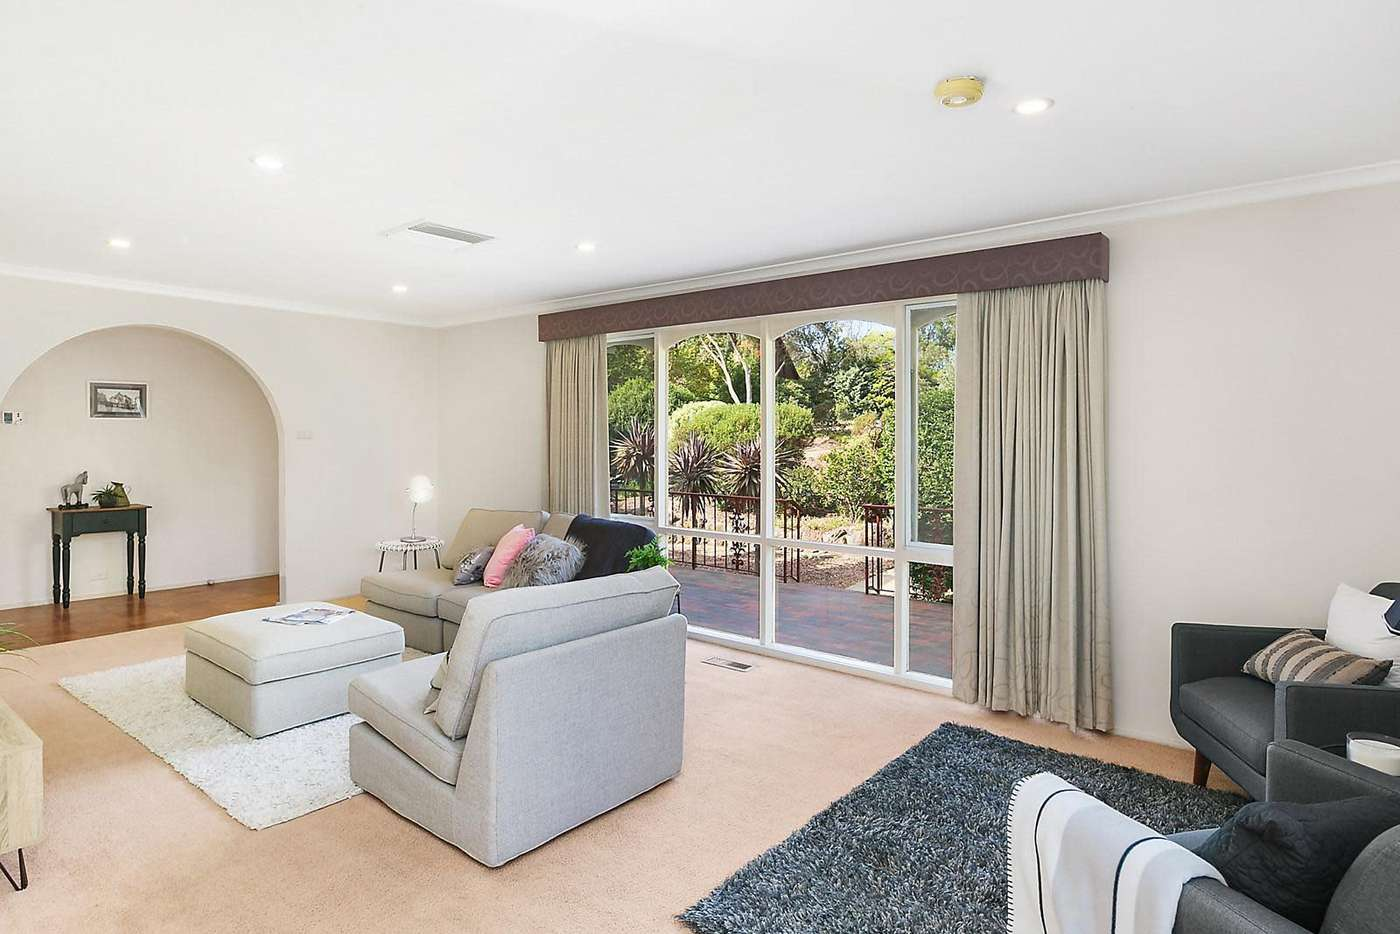 Fifth view of Homely house listing, 84 Shakespeare Crescent, Fraser ACT 2615